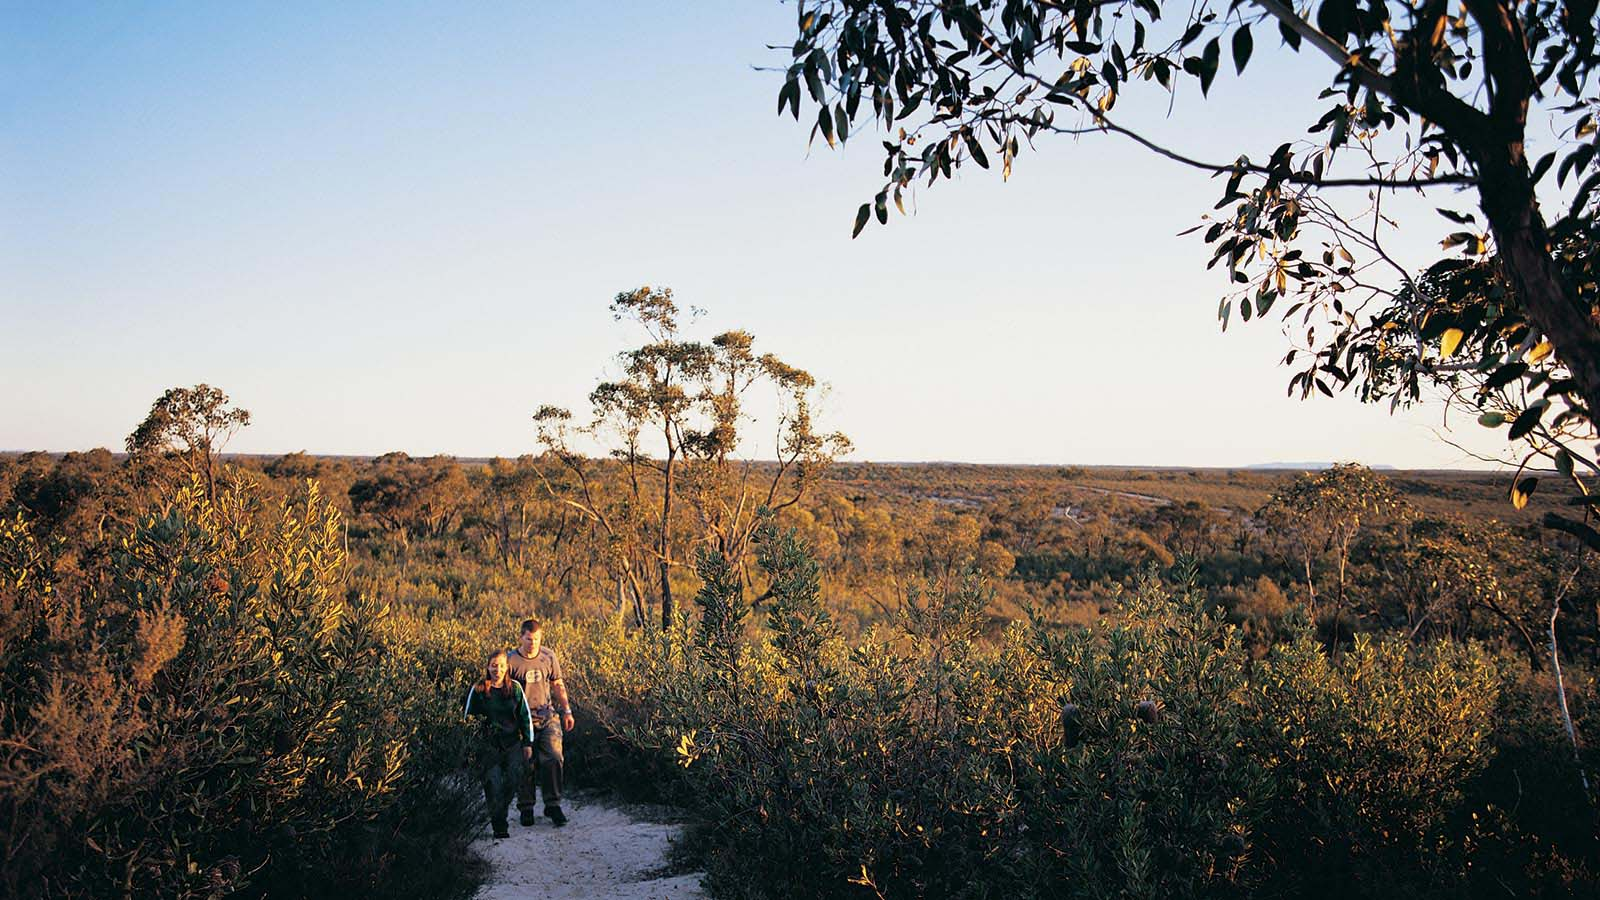 Hiking in Little Desert National Park, Grampians, Victoria, Australia